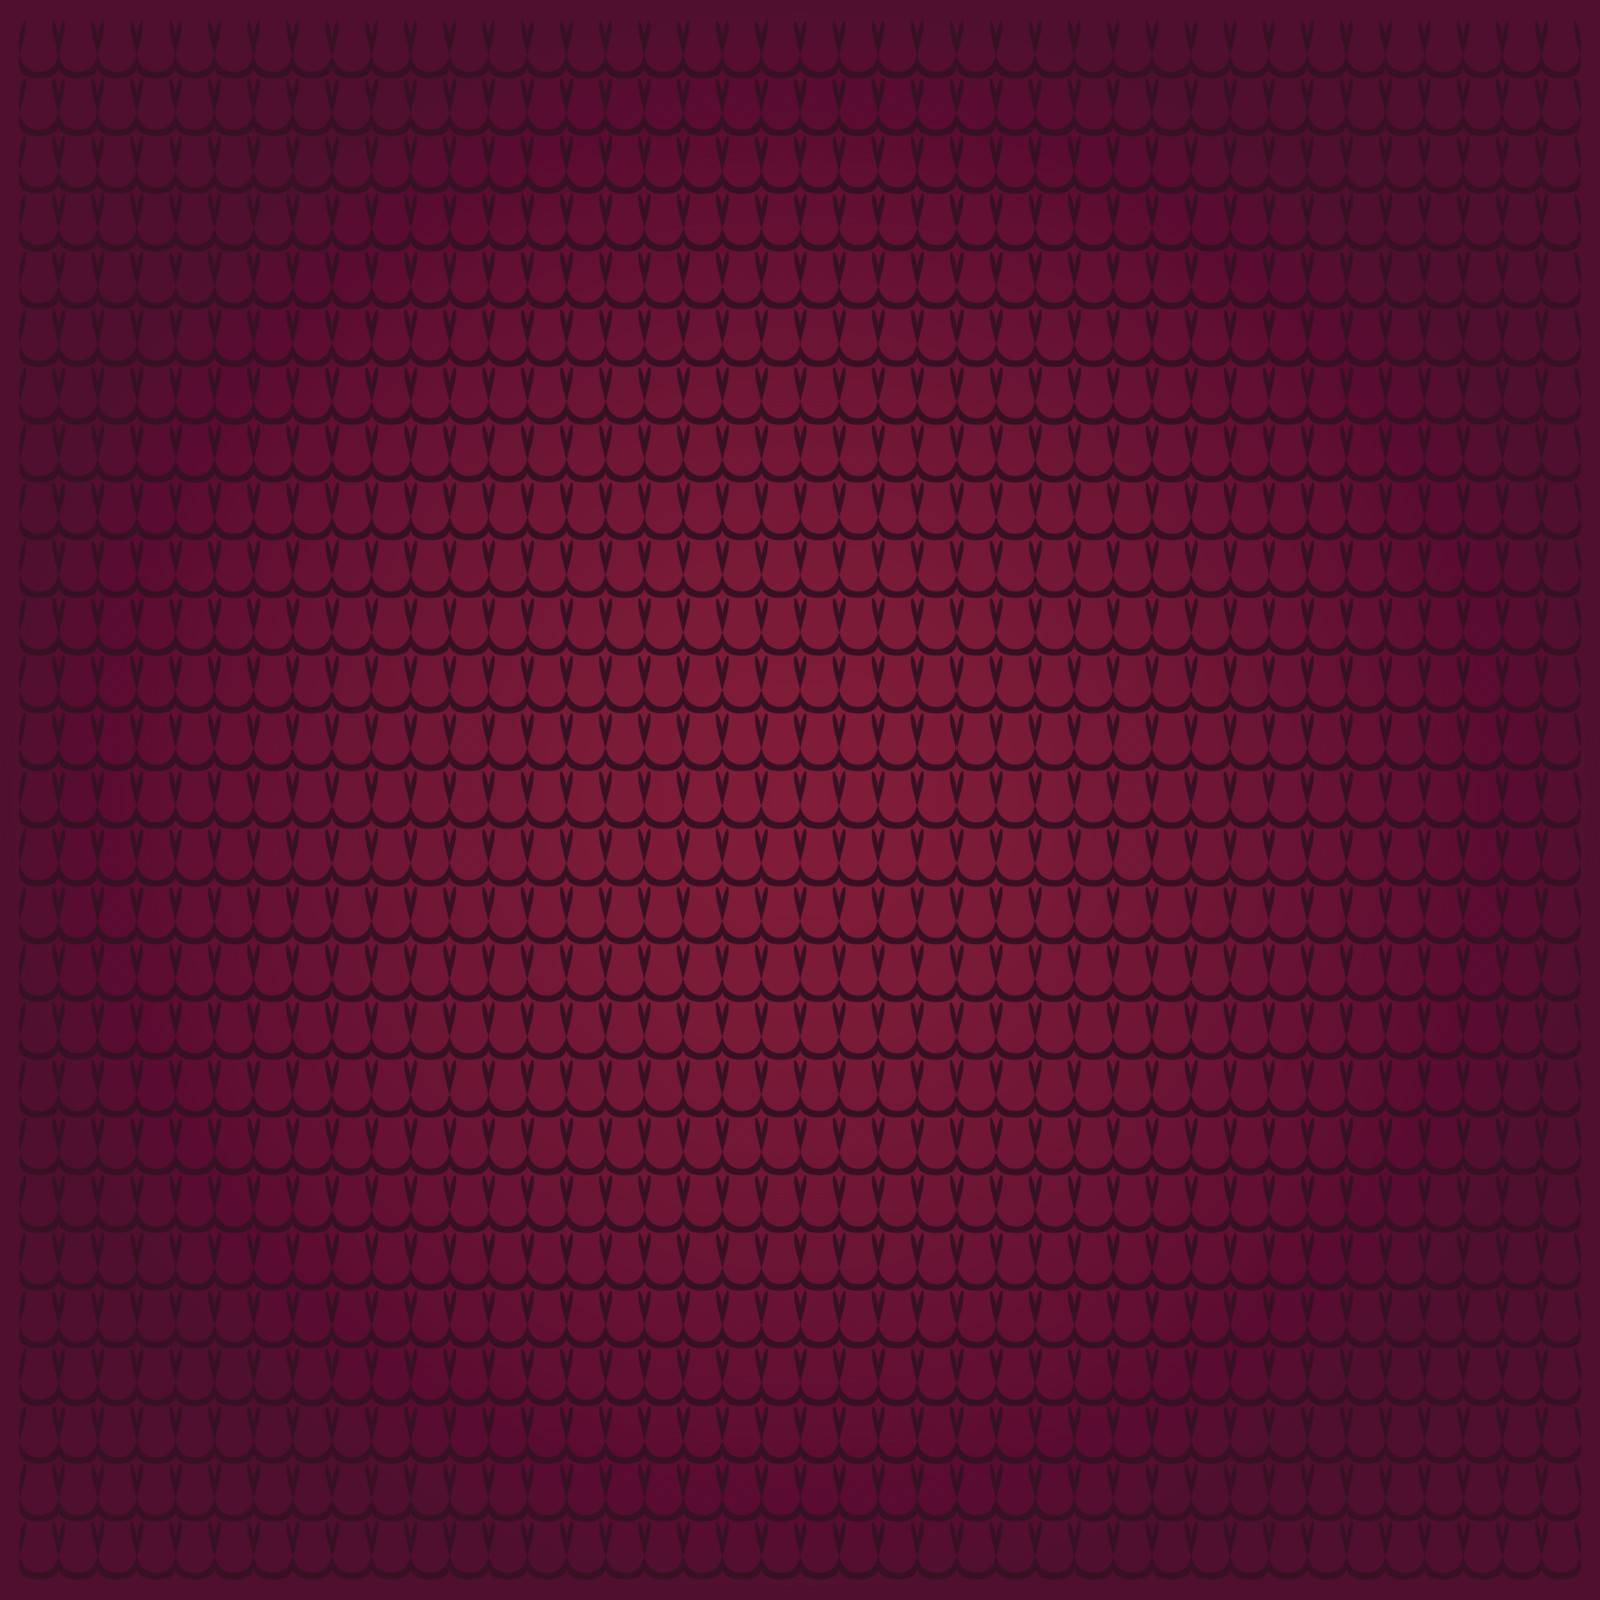 fine vector image with abstract background can use like wallpaper